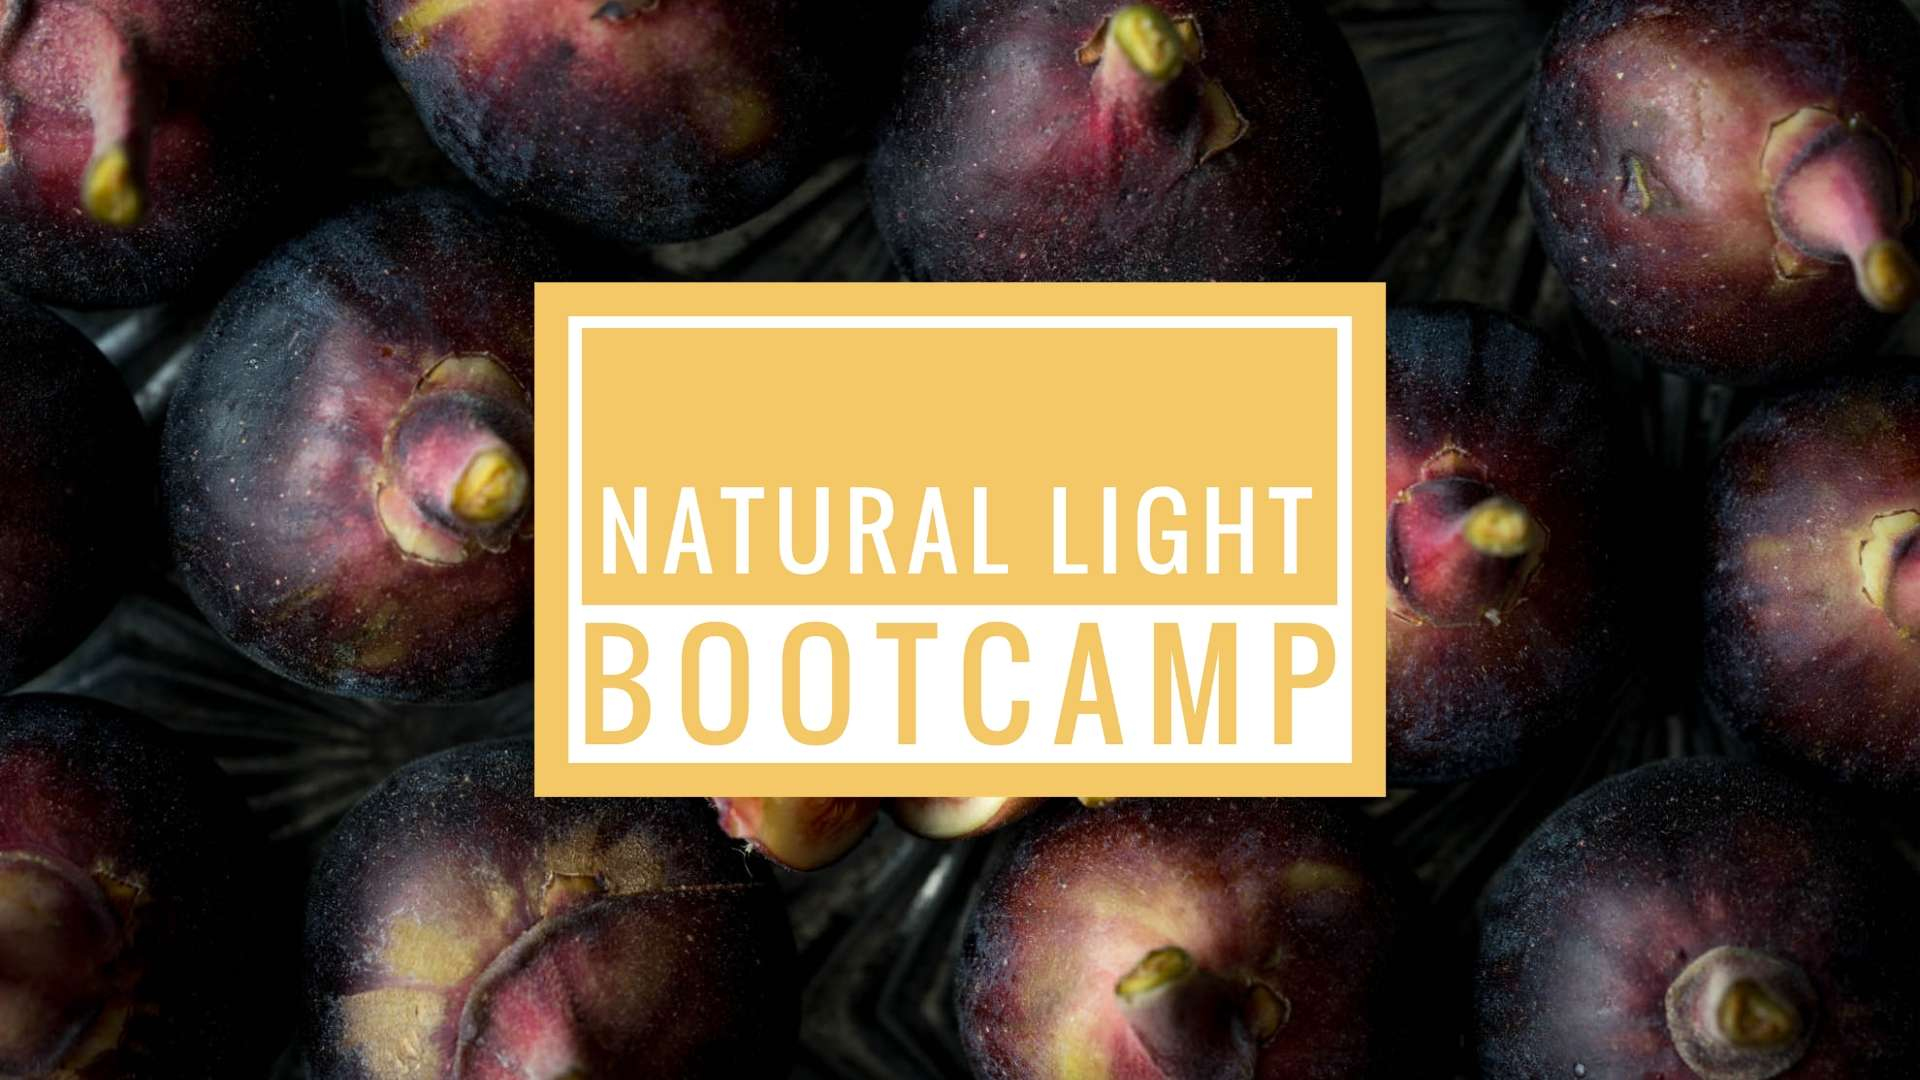 Natural Light Bootcamp Announcement